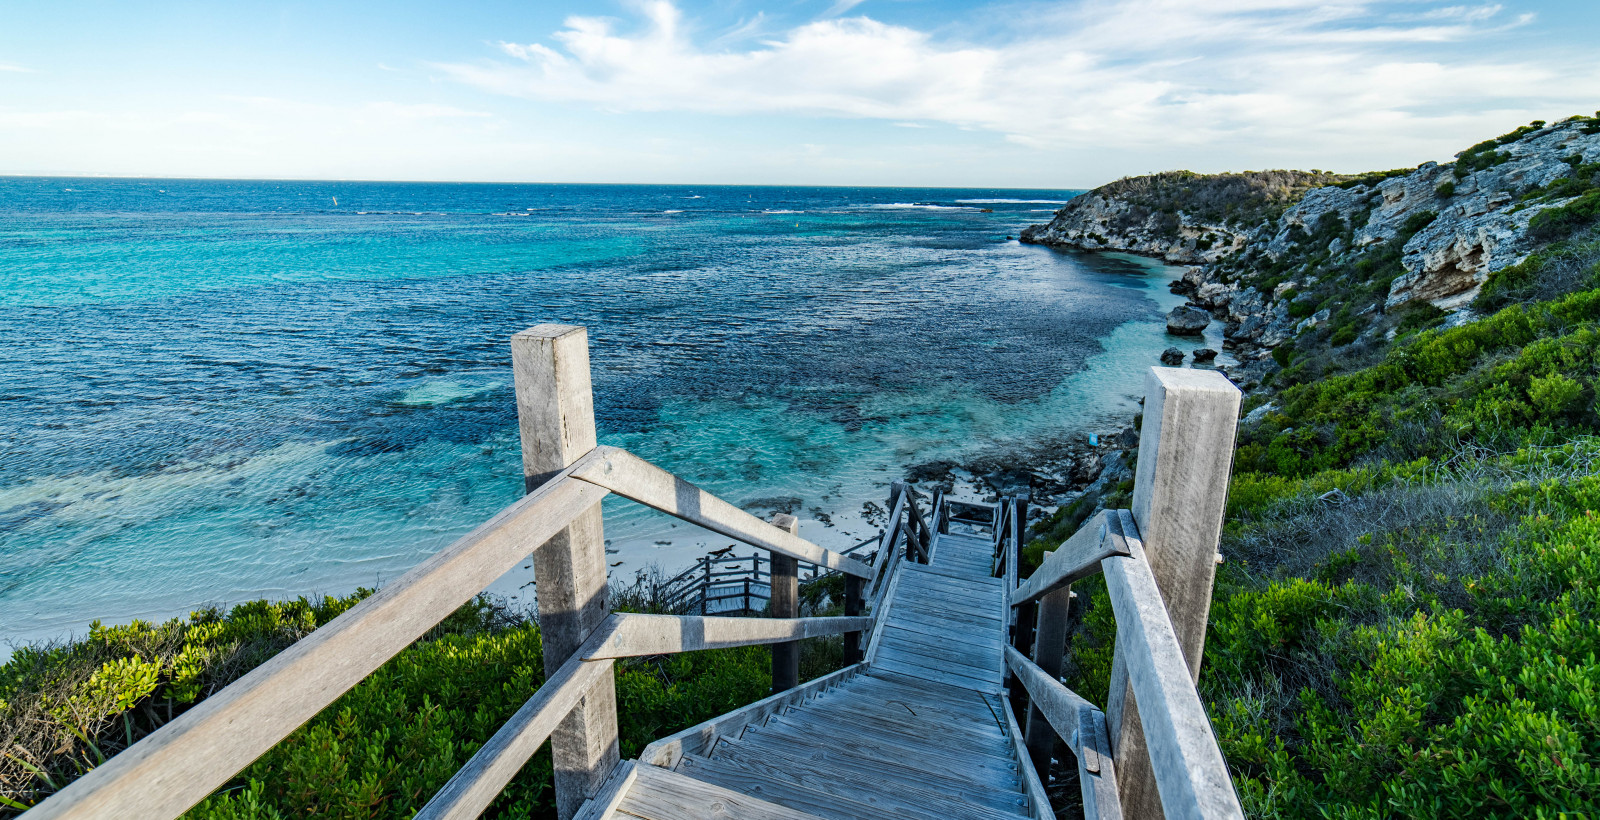 Rottnest Island GettyImages 1000551330